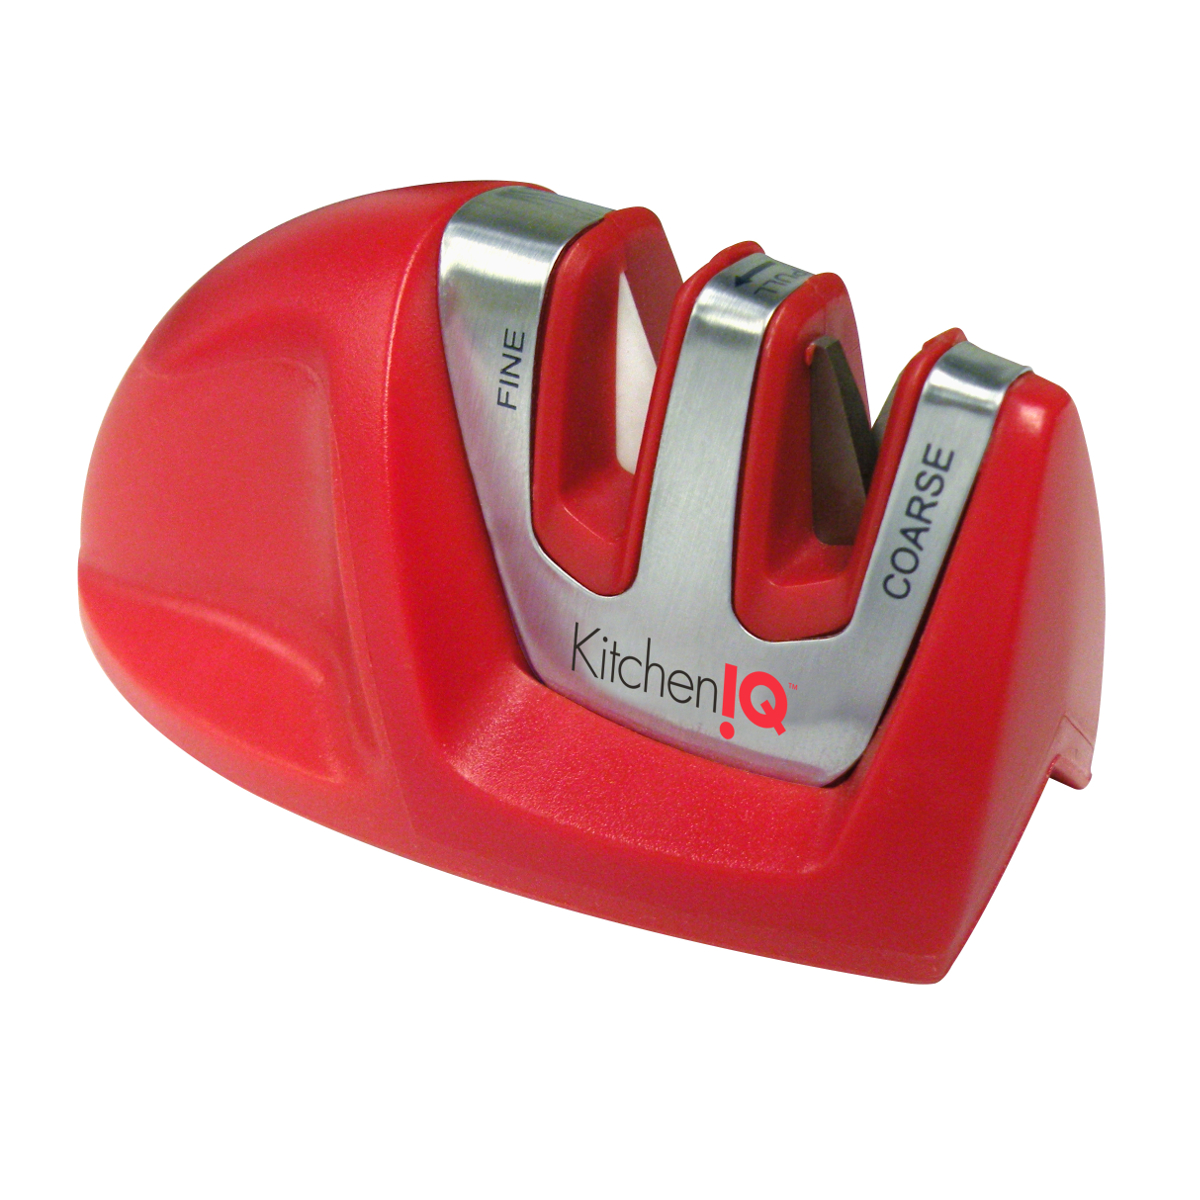 Smith's KitchenIQ Red Edge Grip 2 Stage Knife Sharpener